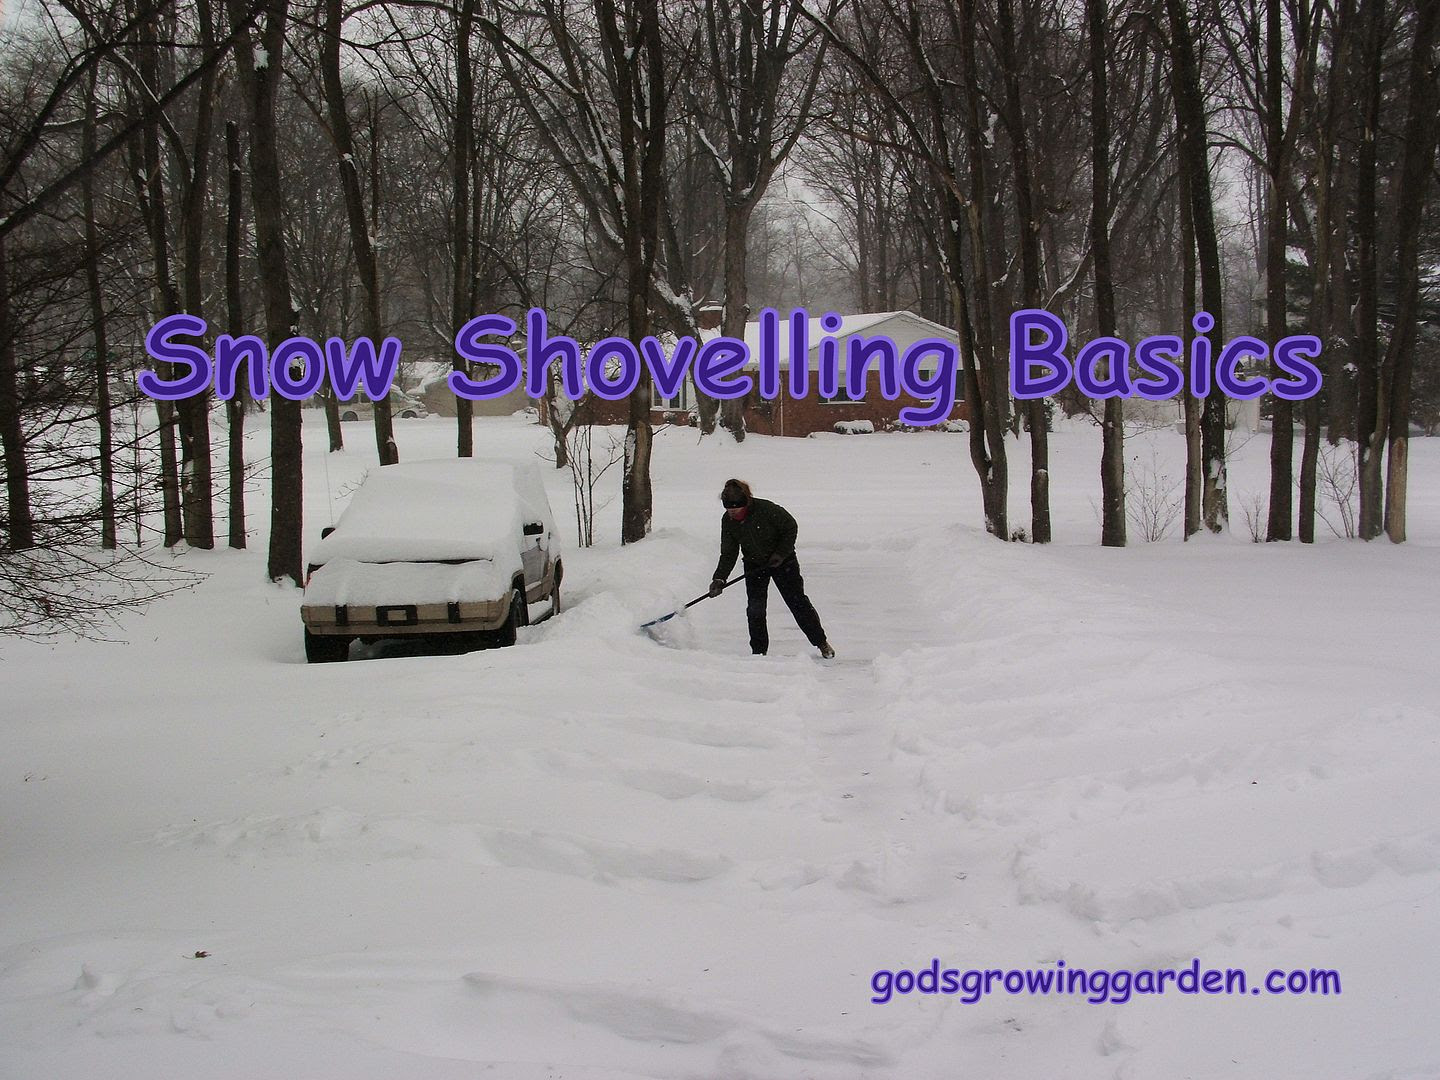 Snow Shovelling by Angie Ouellette-Tower for godsgrowinggarden.com photo 006_zpsb61d212c.jpg